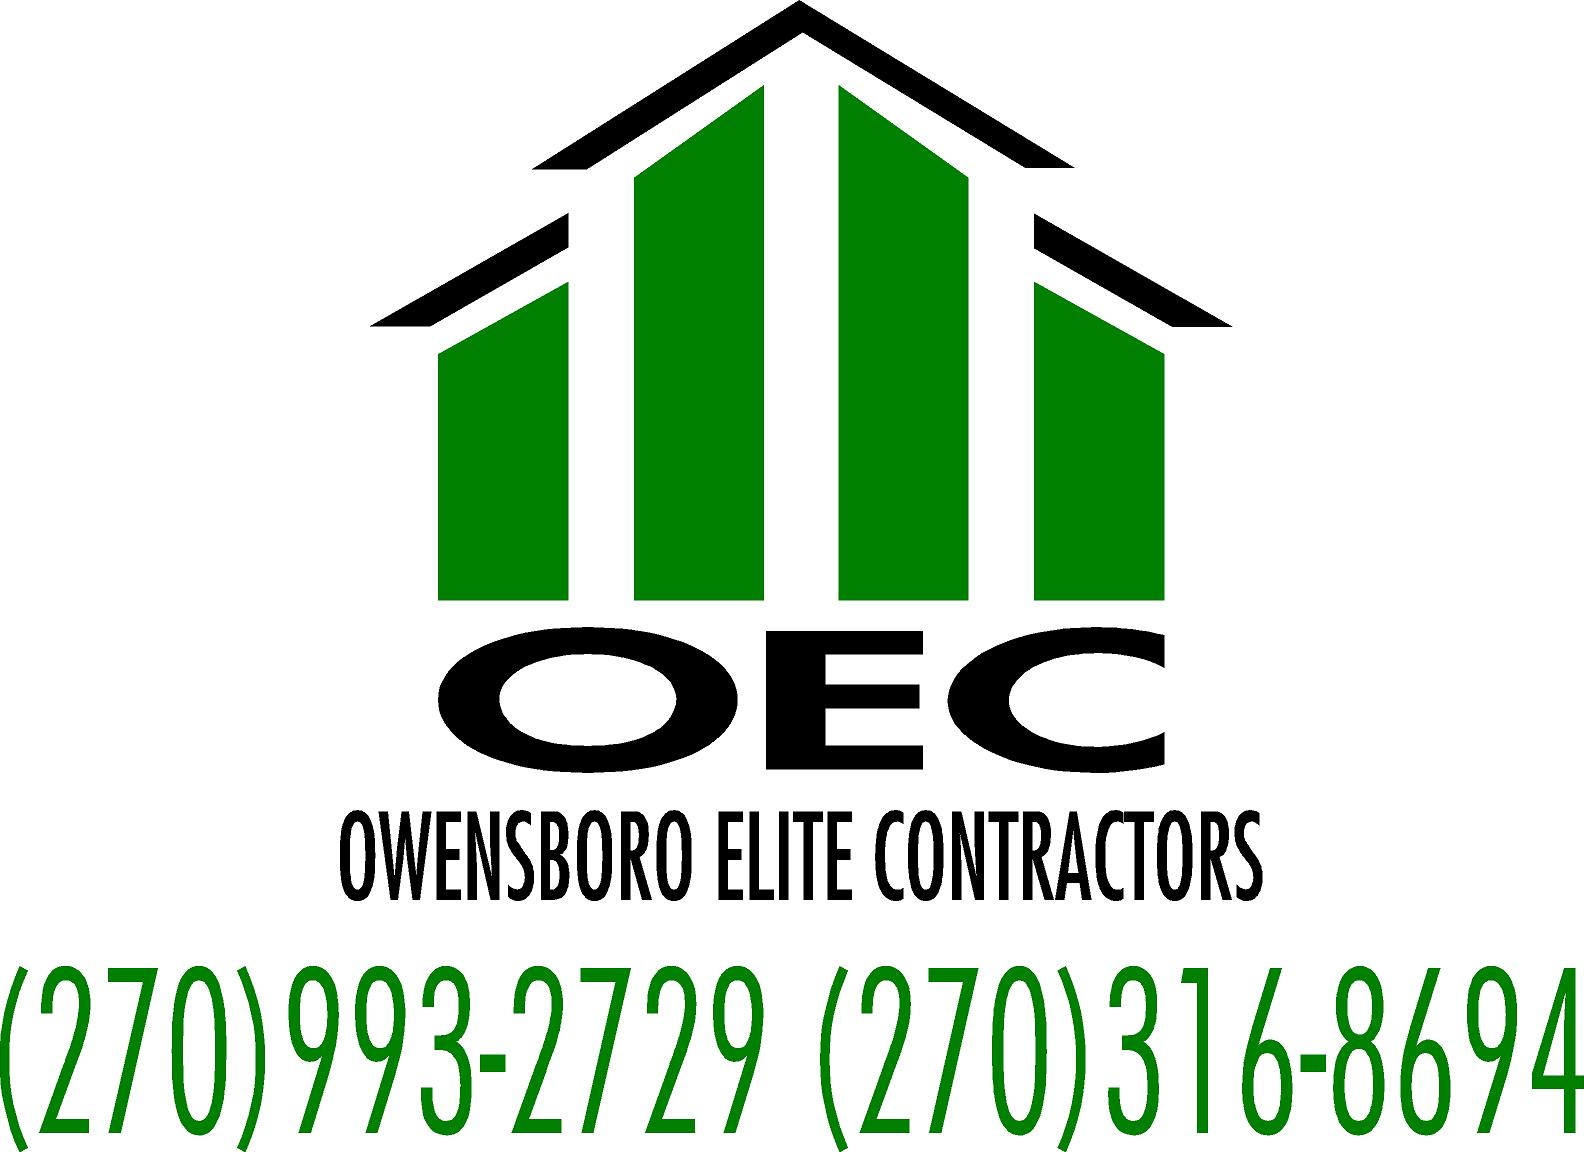 Owensboro Elite Contractors